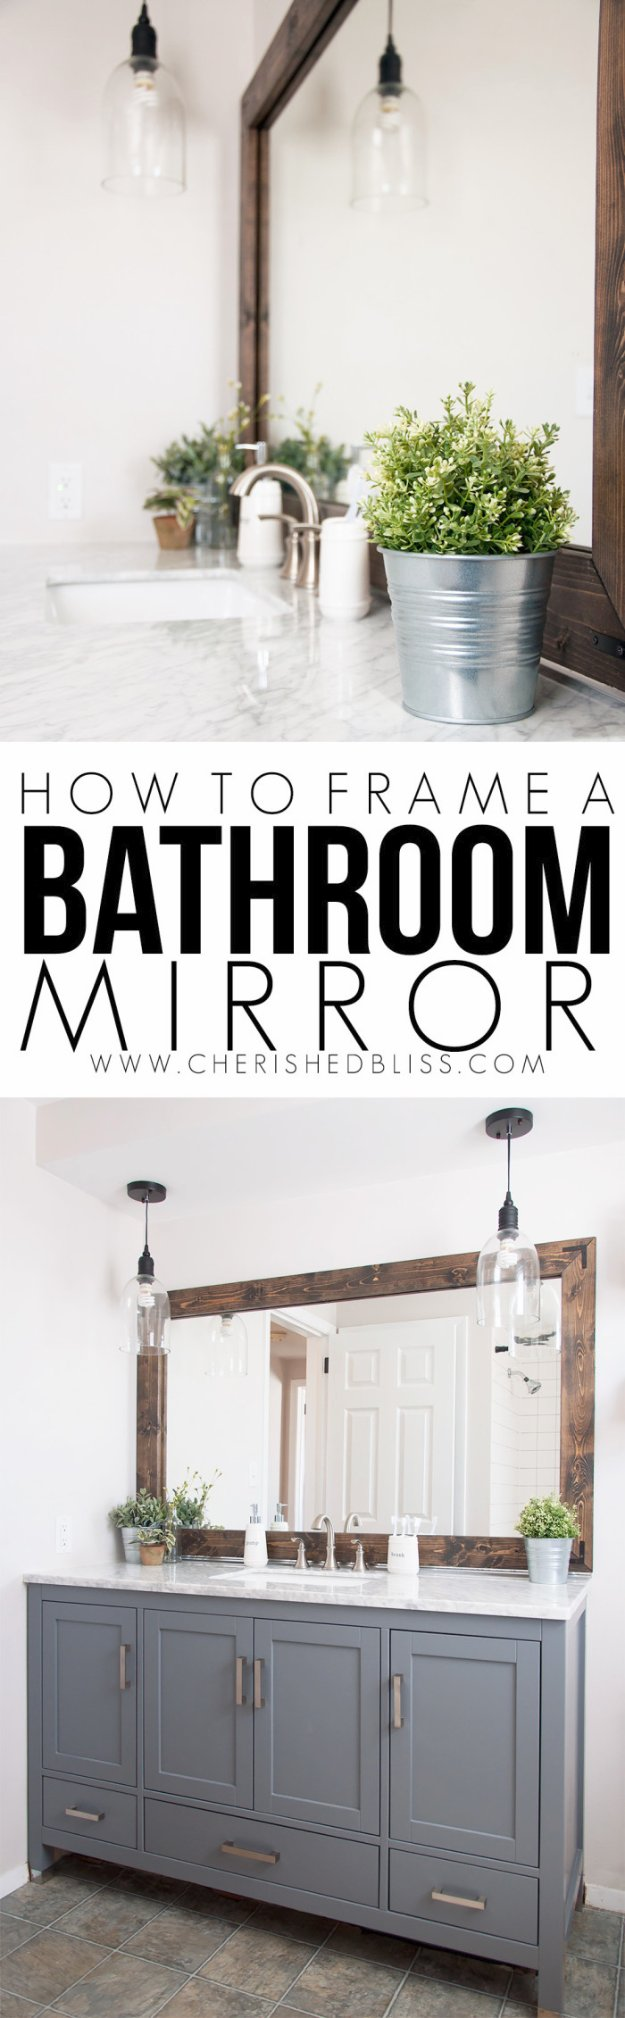 DIY Bathroom Decor Ideas - Wood Framed Bathroom Mirror Tutorial - Cool Do It Yourself Bath Ideas on A Budget, Rustic Bathroom Fixtures, Creative Wall Art, Rugs mason jar idea bath diy